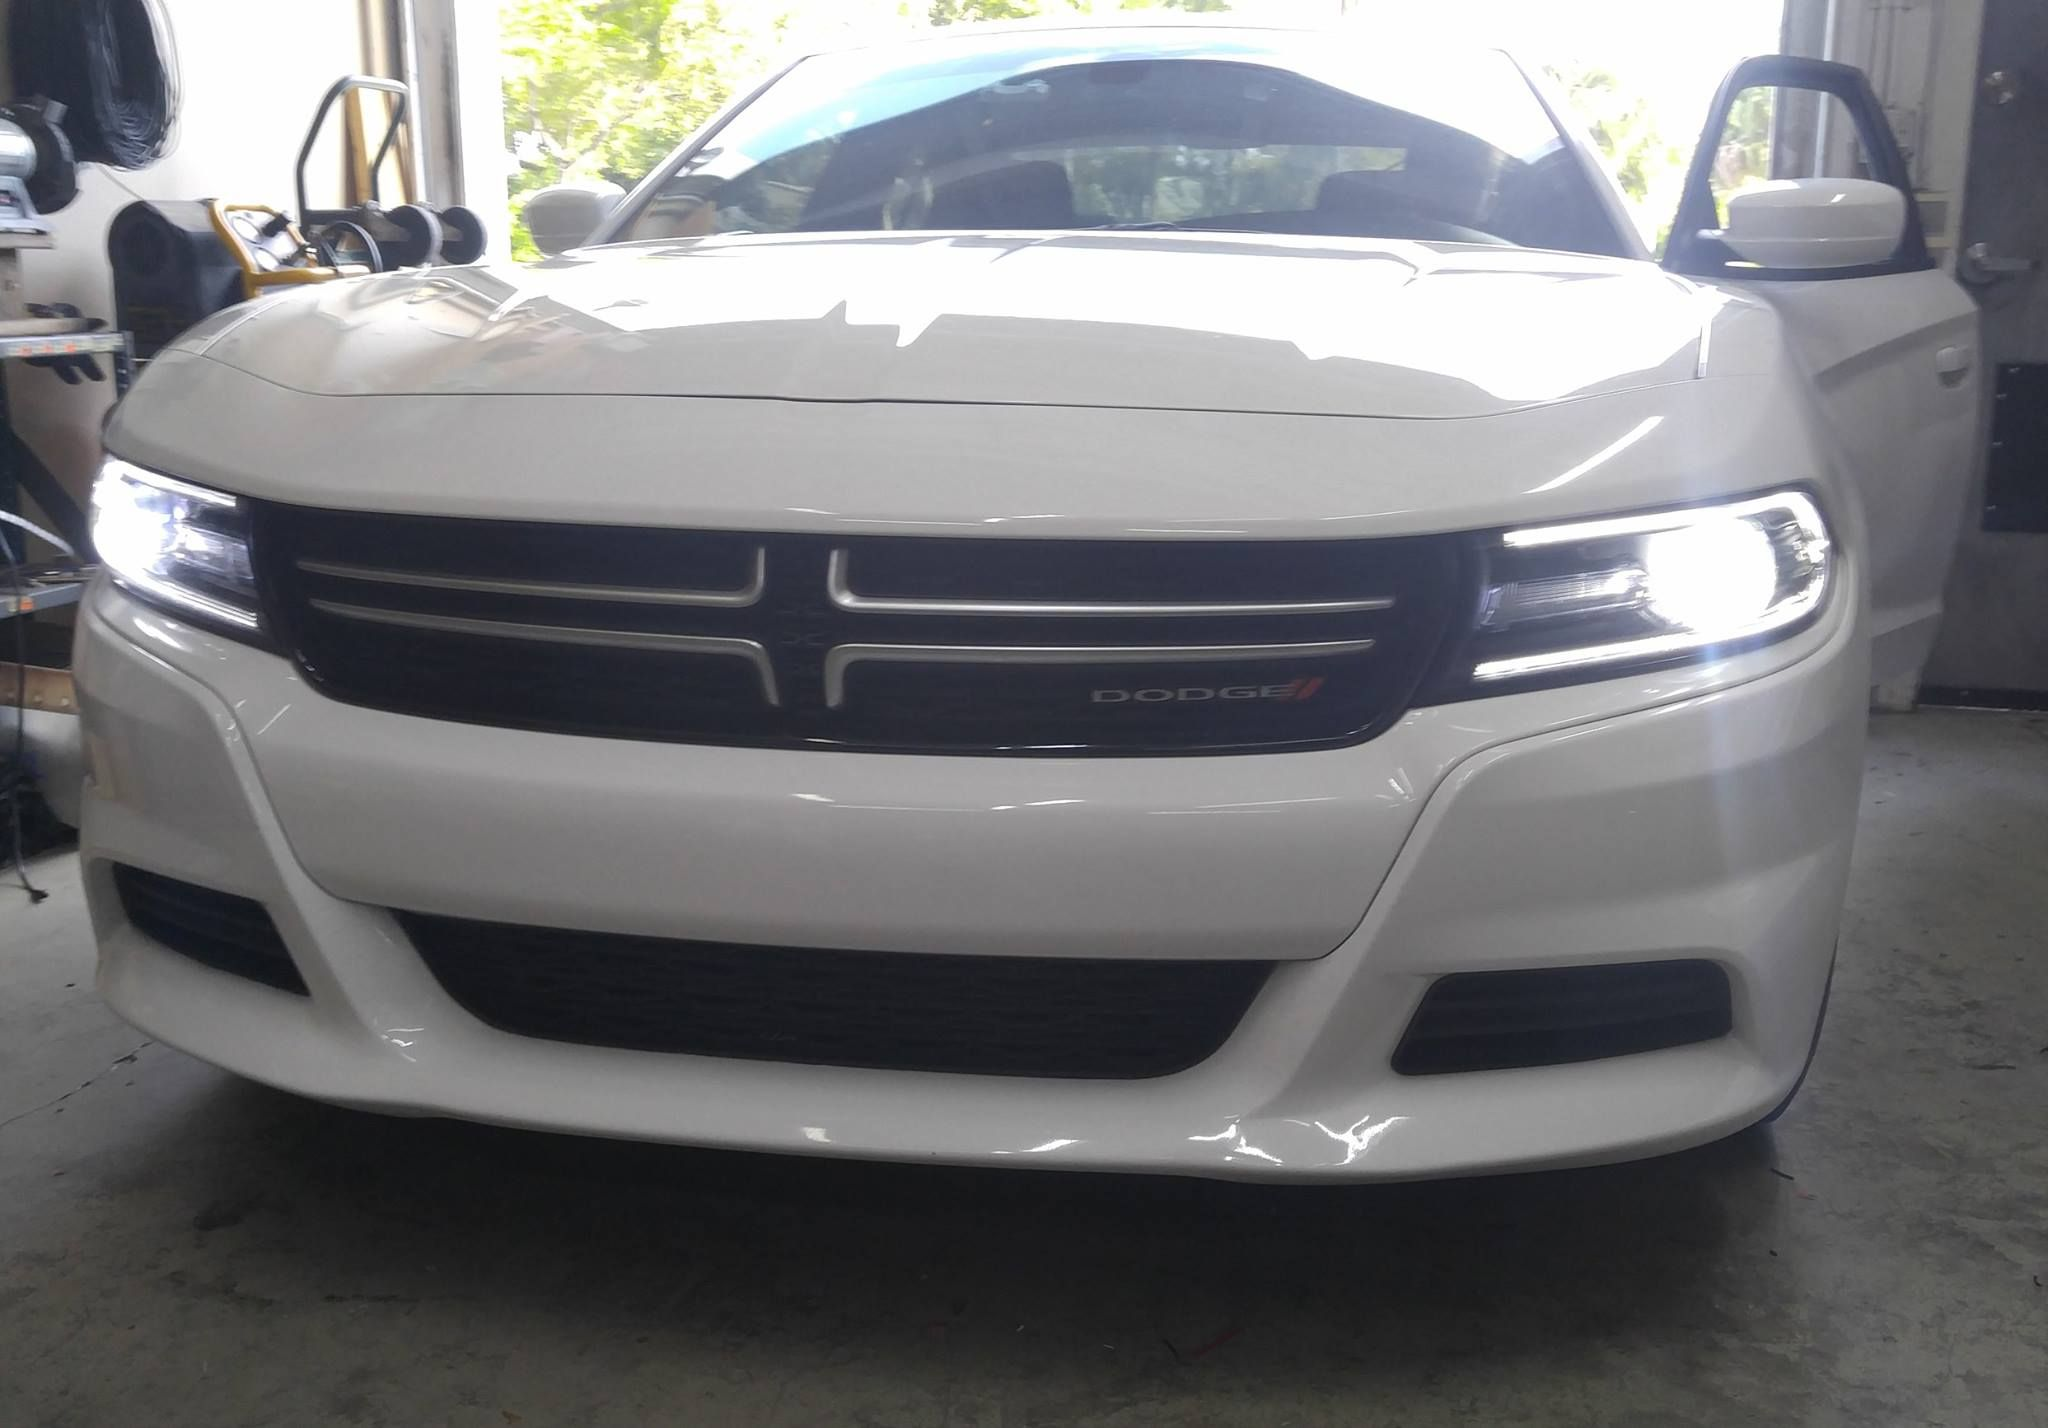 Shop Work Installed Two Of Our 9005 Led Headlight Bulbs On This 2015 Dodge Charger 2015 Dodge Charger Charger Accessories Motorcycle Led Lighting